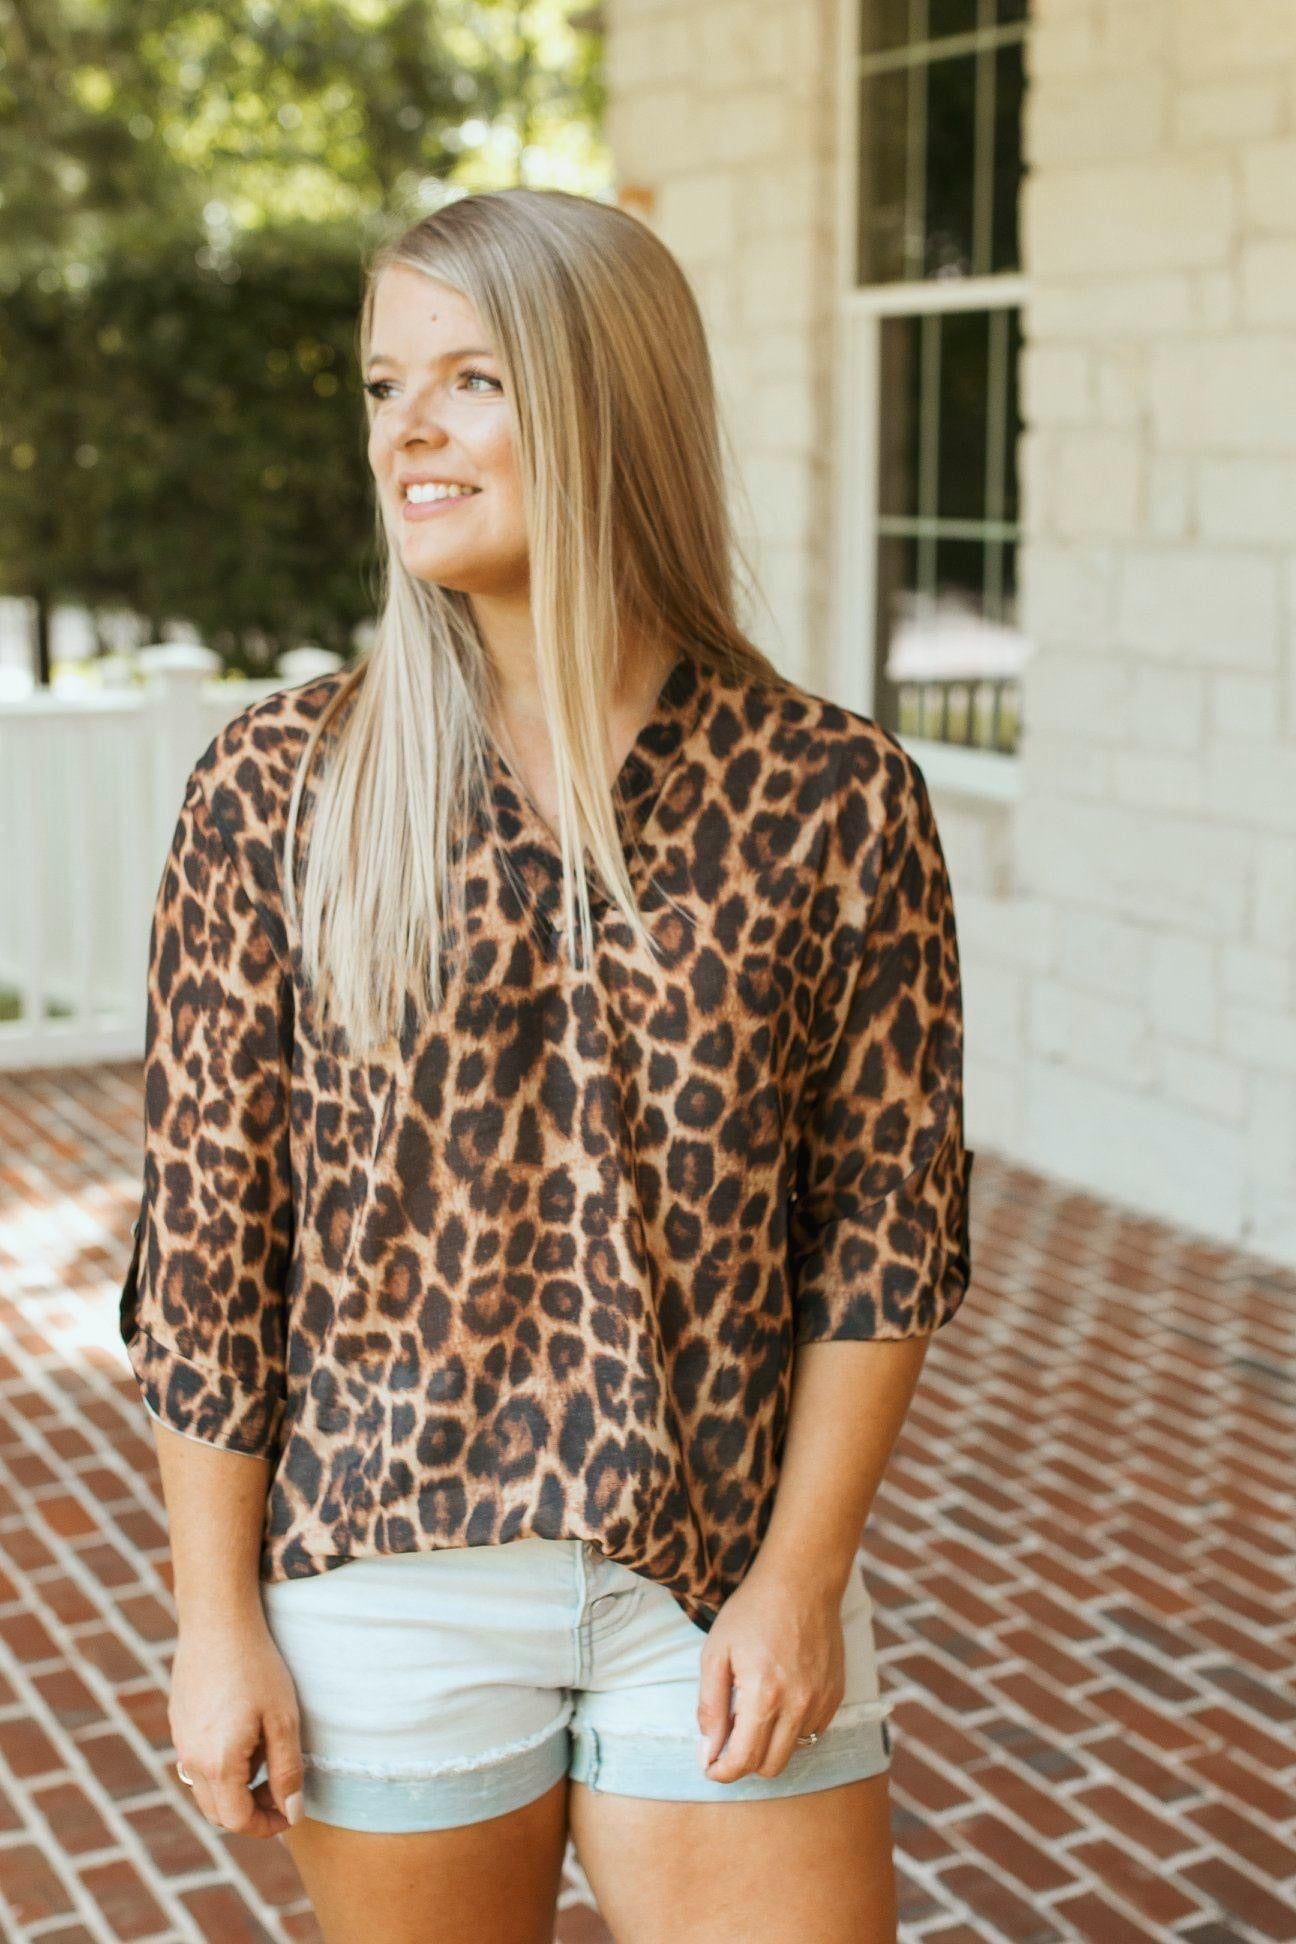 Feeling Good Leopard Top (S-3XL)